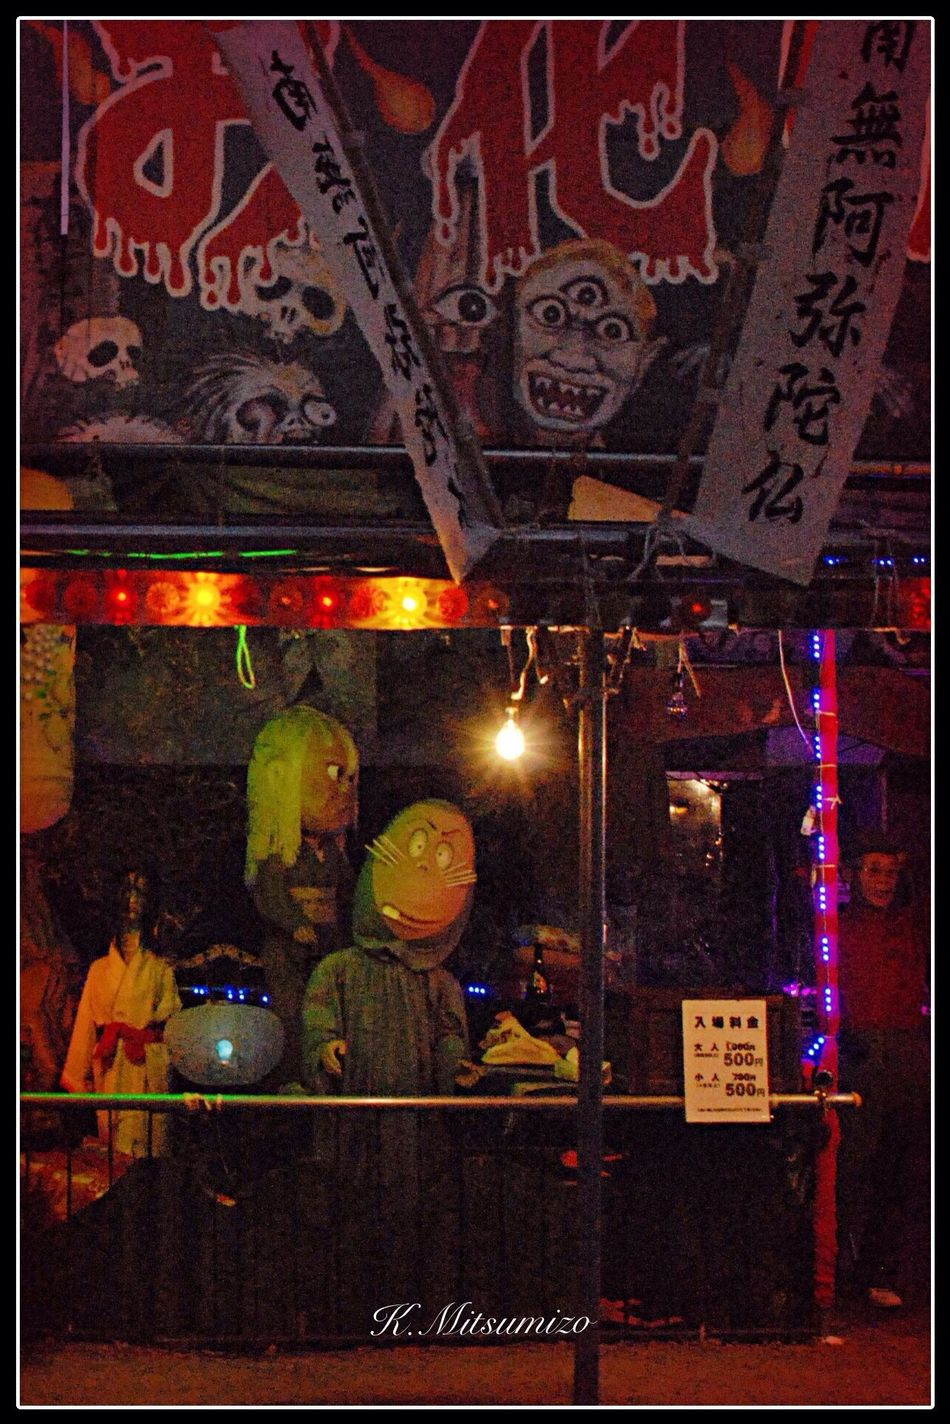 Haunted house of Japan 唐津くんちのお化け屋敷 お化け屋敷 唐津 A Haunted House Tadaa Community